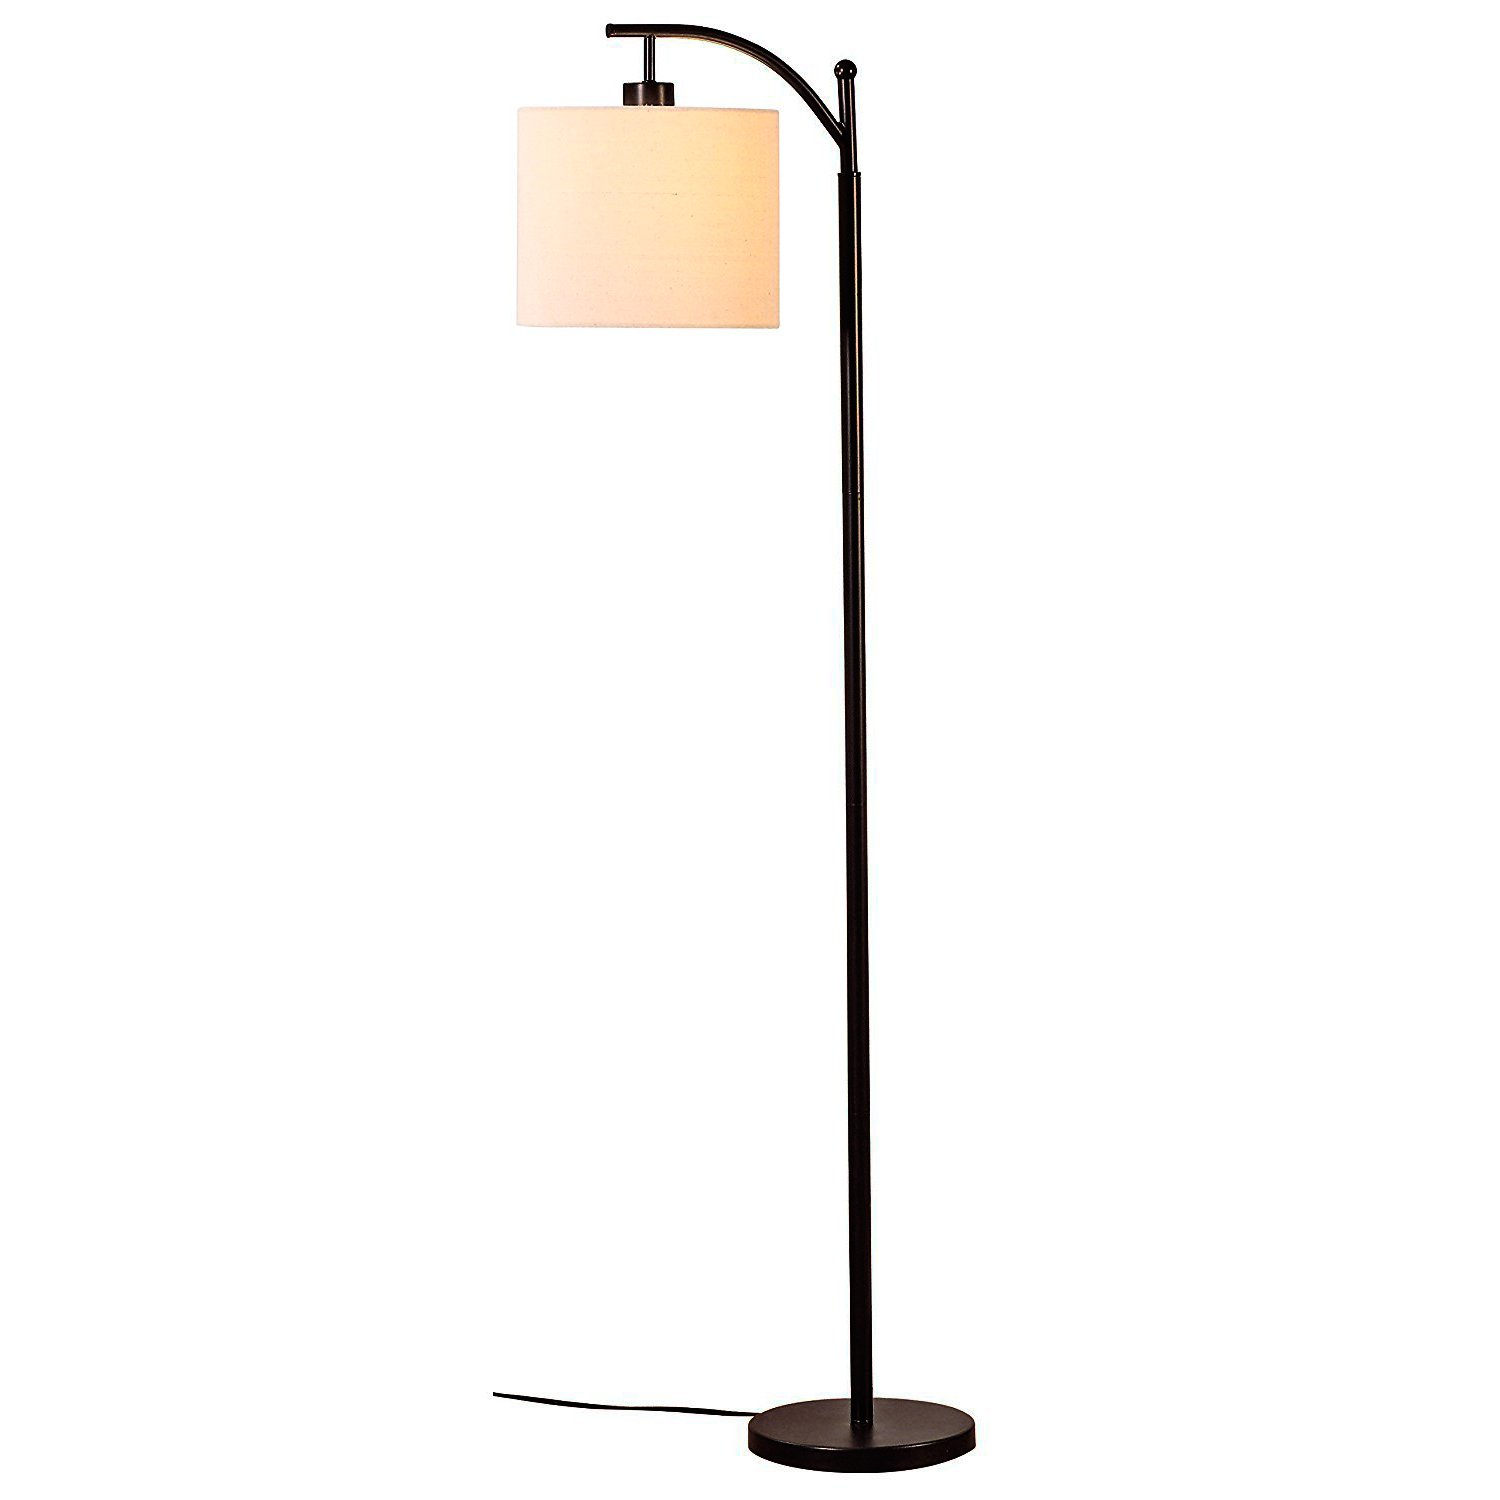 Amazon brightech montage led floor lamp classic arc floor amazon brightech montage led floor lamp classic arc floor lamp with hanging lamp shade tall industrial uplight lamp for living room family room mozeypictures Image collections